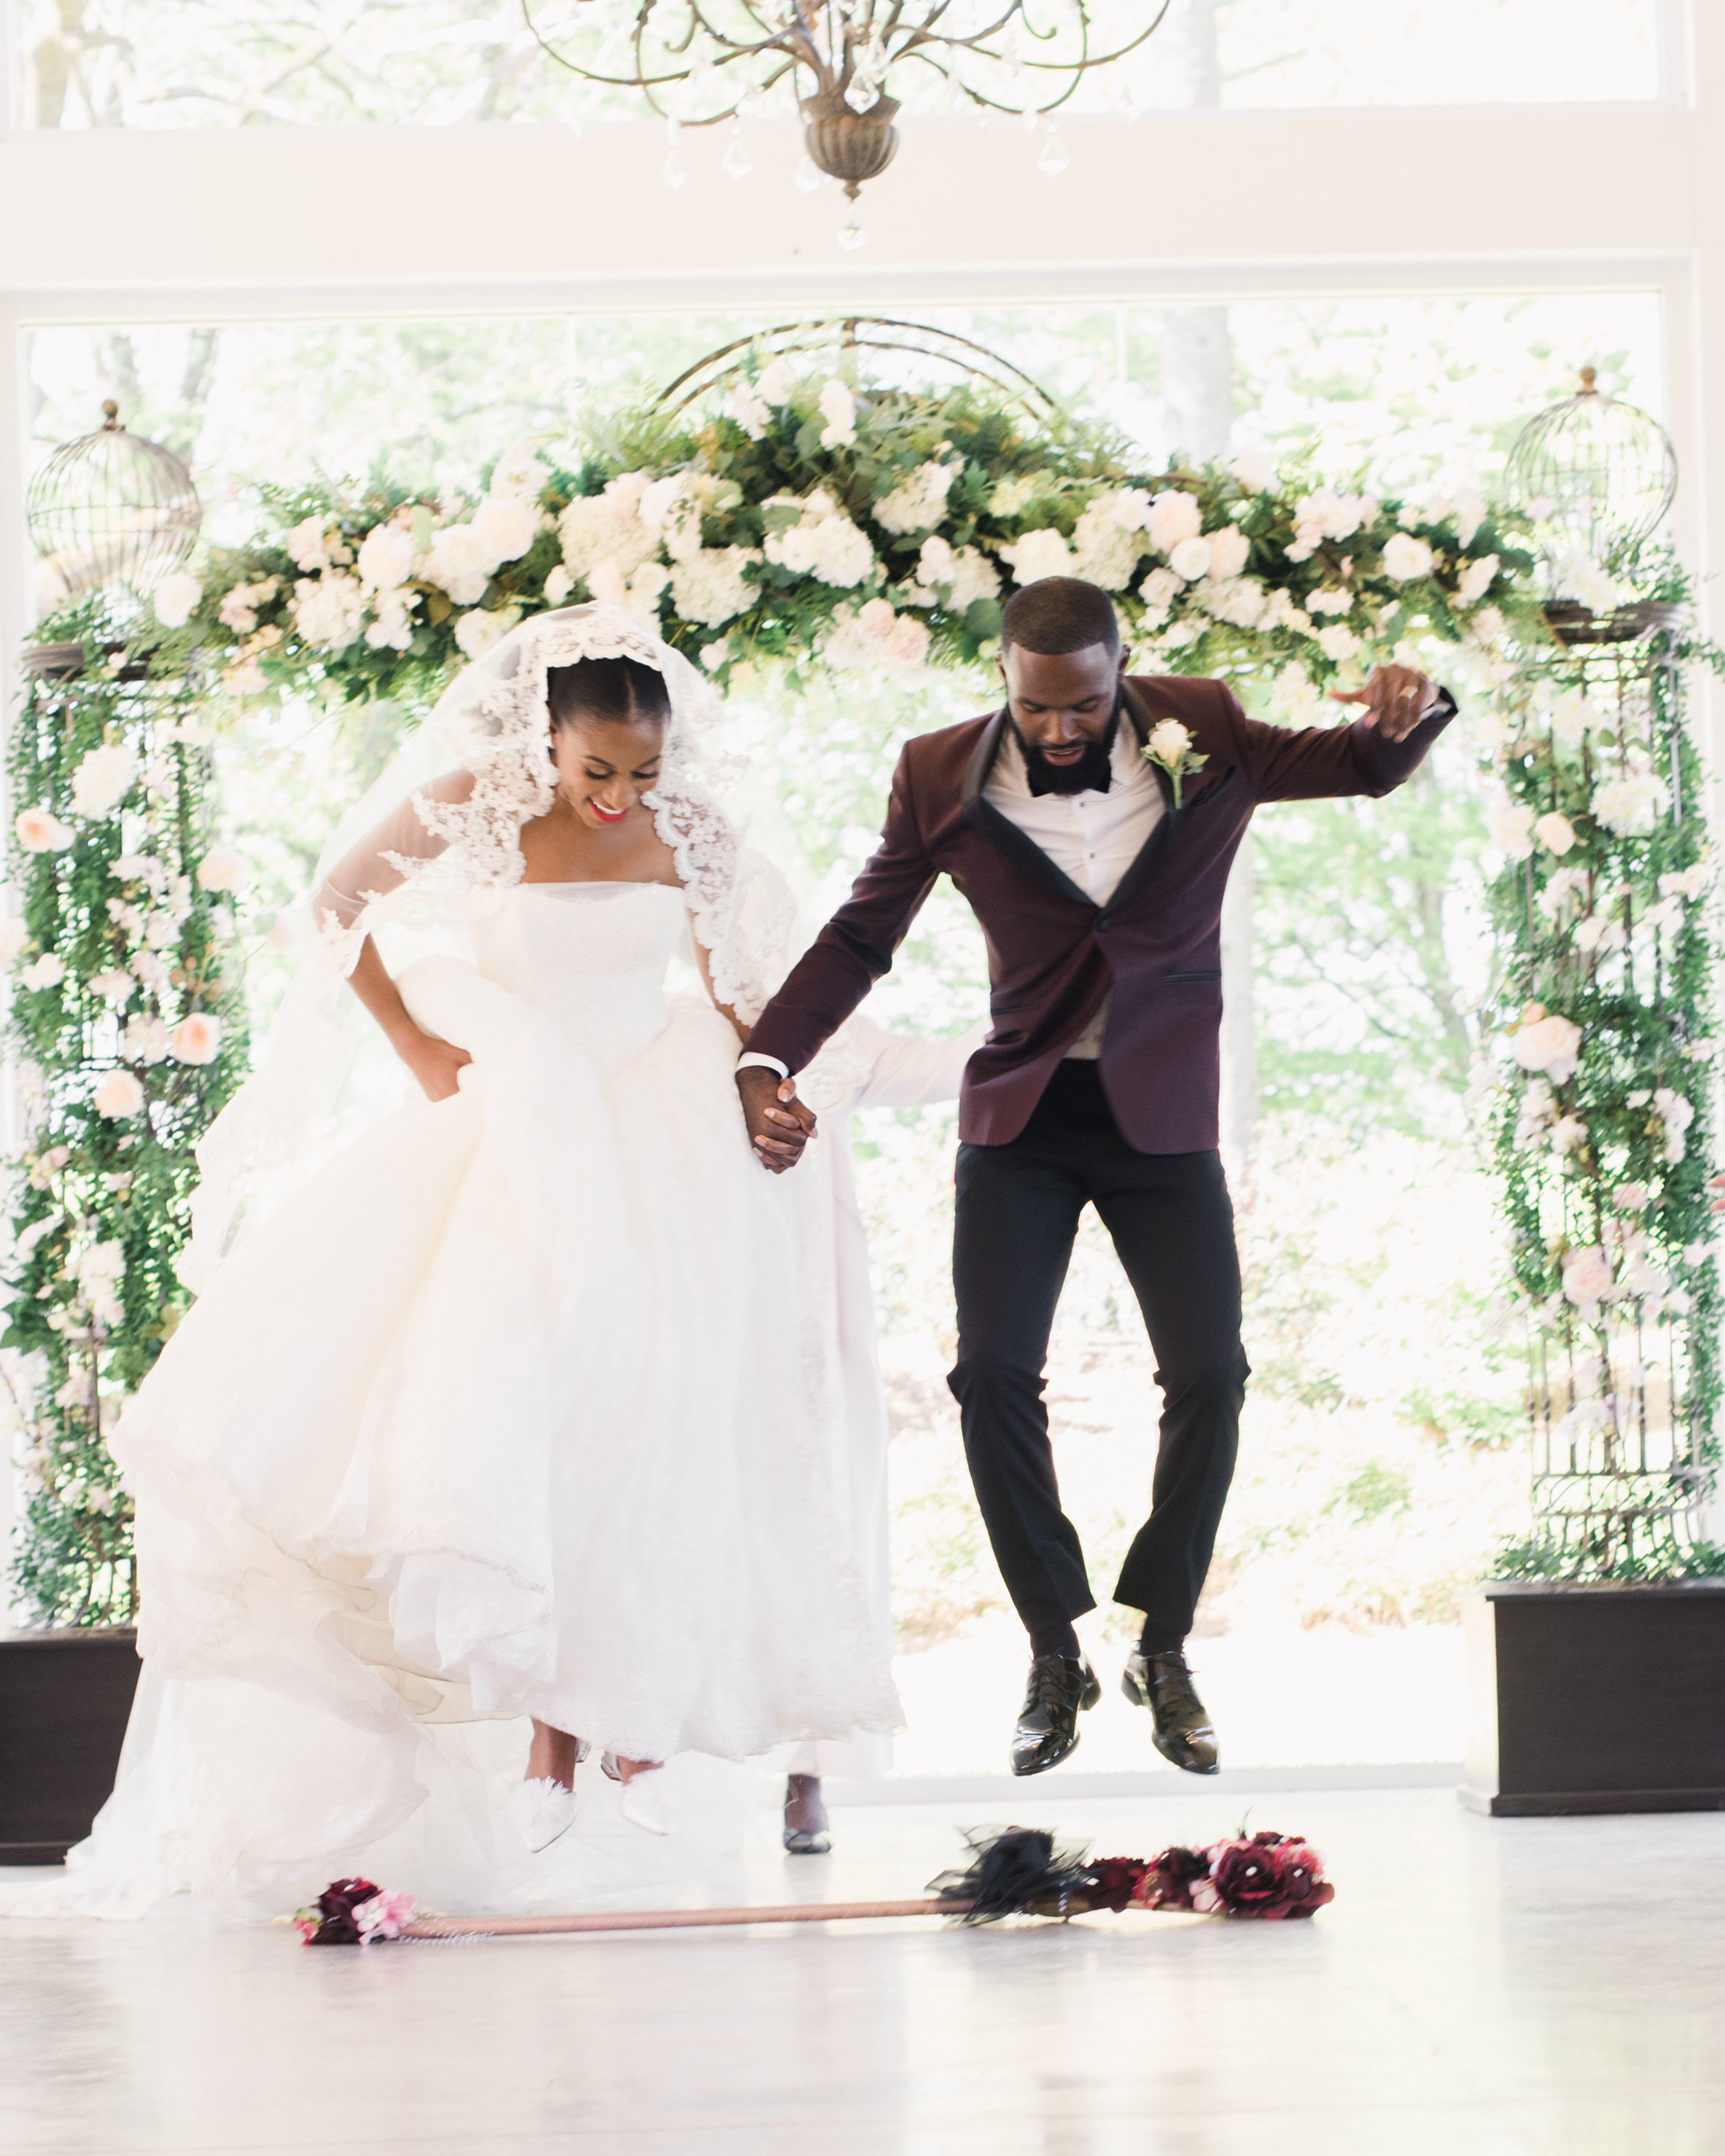 Wedding Ceremony And Reception: The Real Cost Of Serving Multiple Wedding Cakes At Your